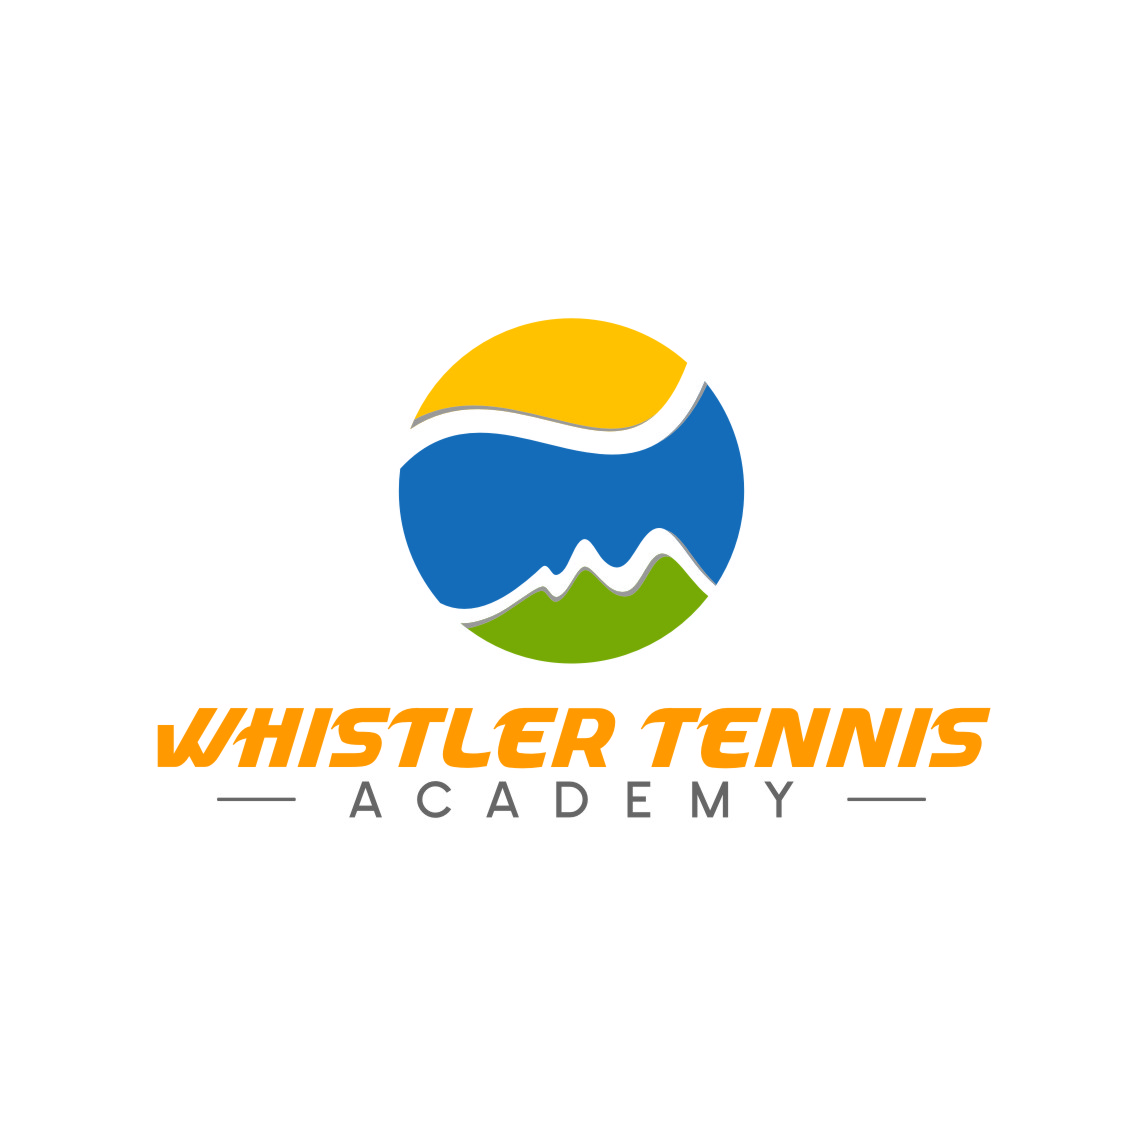 Logo Design by Ngepet_art - Entry No. 212 in the Logo Design Contest Imaginative Logo Design for Whistler Tennis Academy.